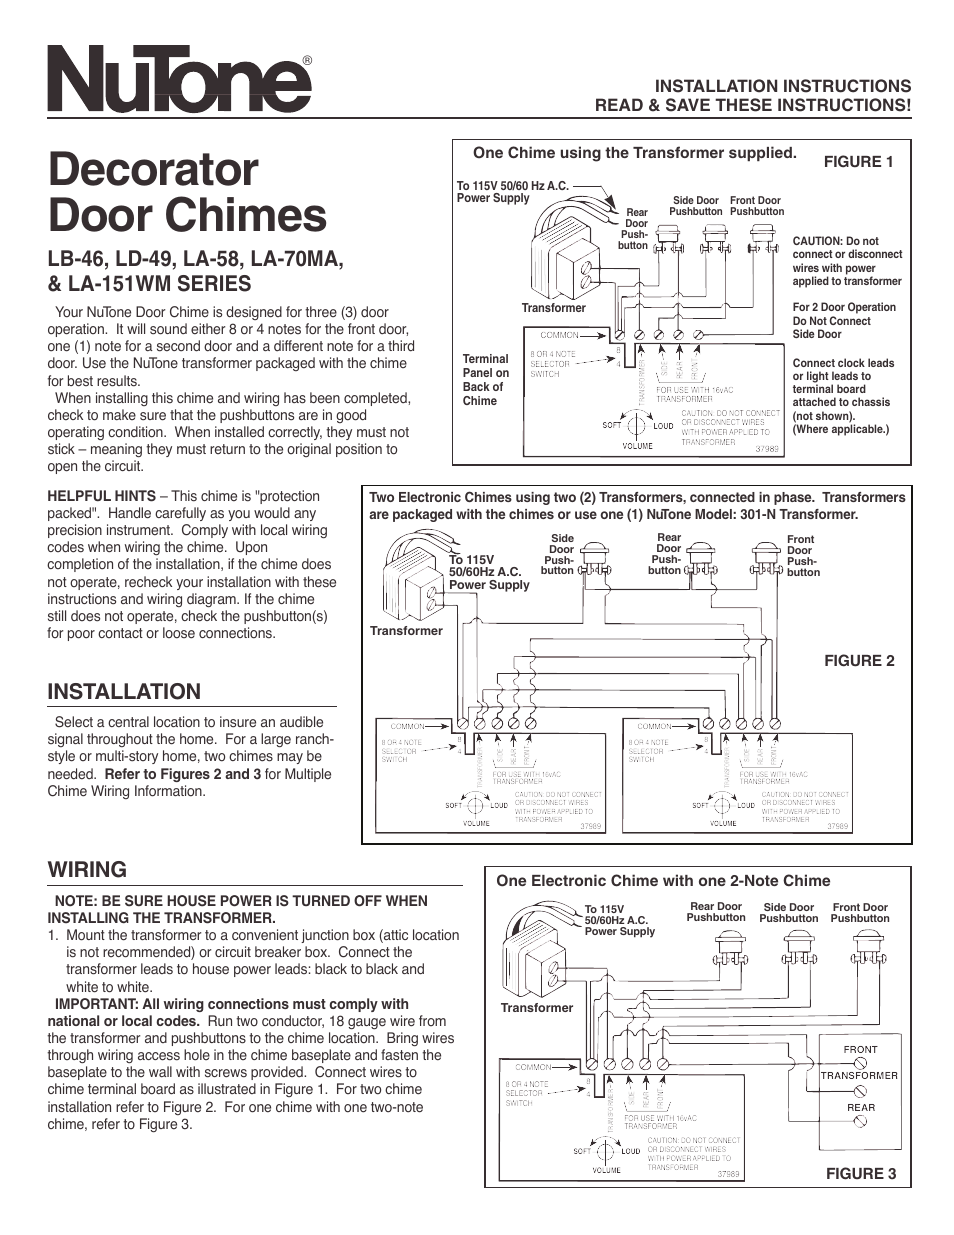 nutone door chimes wiring diagram tracking wires   48 wiring diagram images